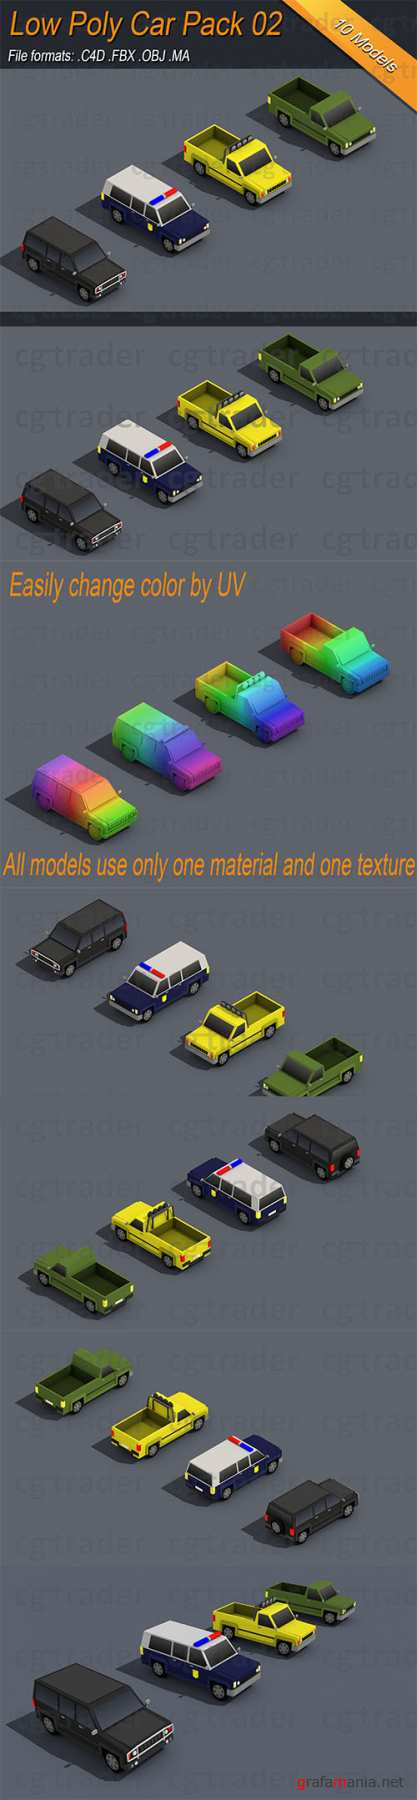 Low Poly Truck Pack 02 Isometric Low-poly 3D model